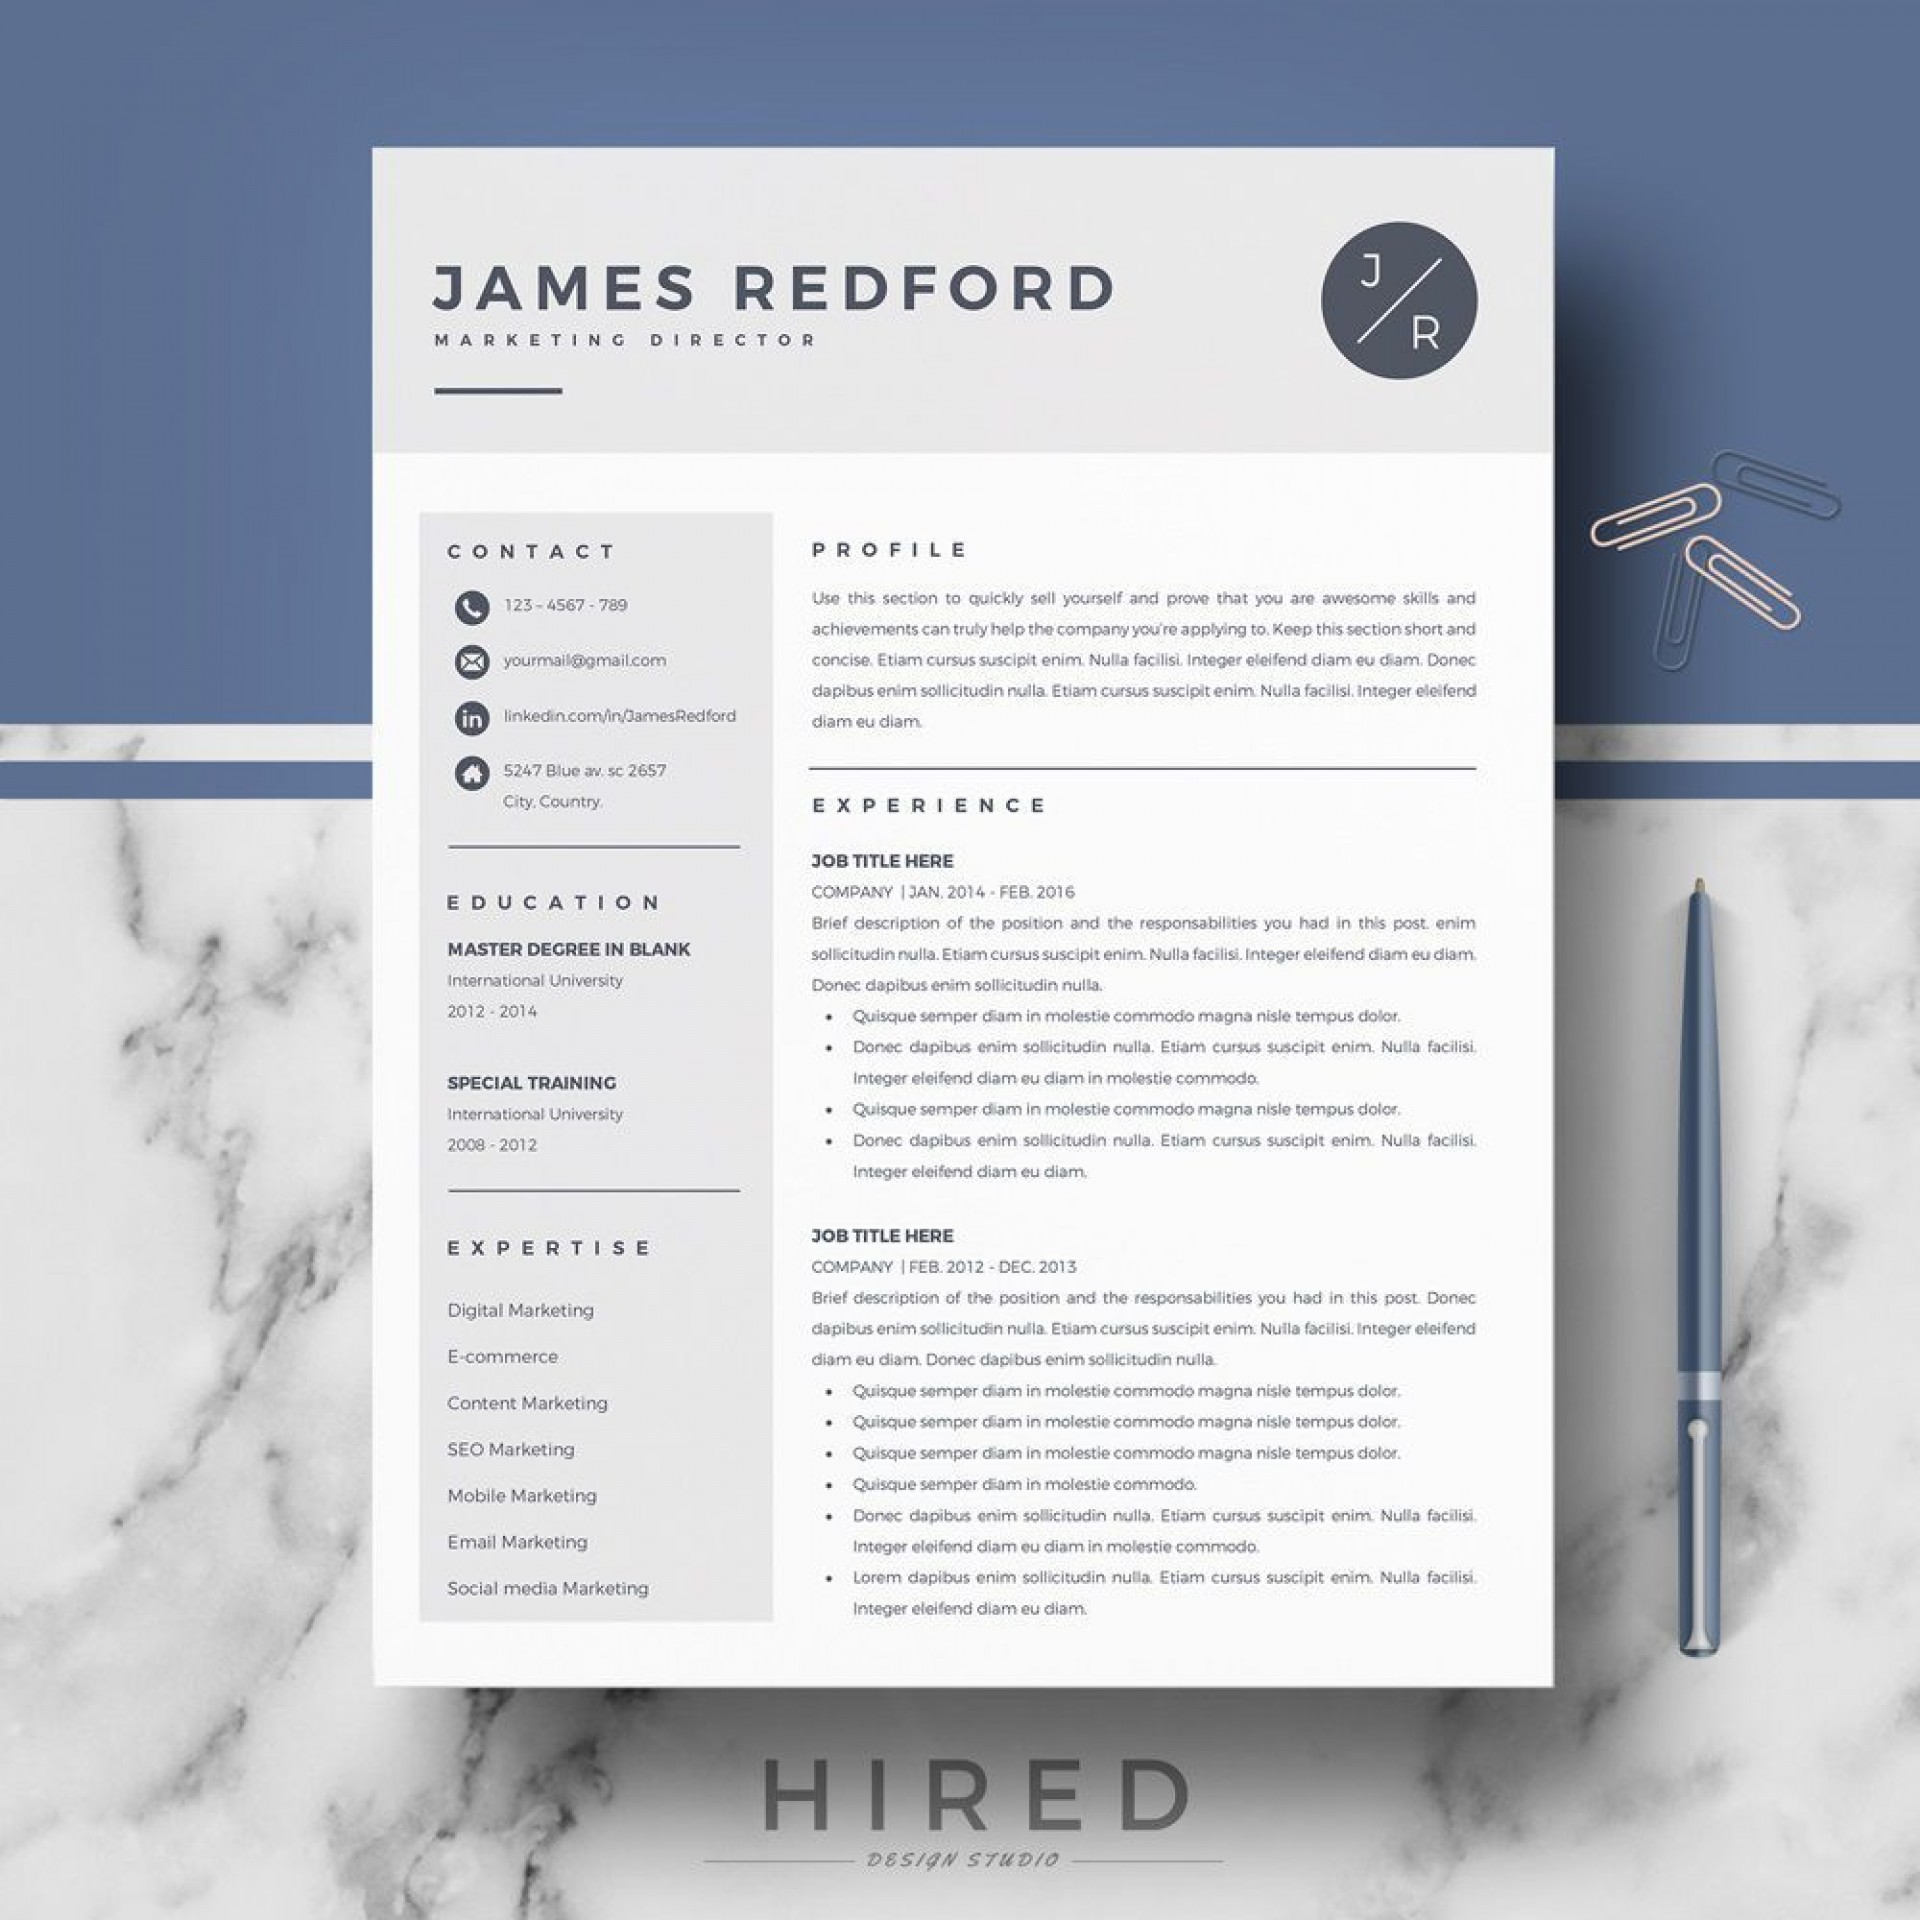 000 Archaicawful Download Free Resume Template For Mac Page Photo  Pages1920